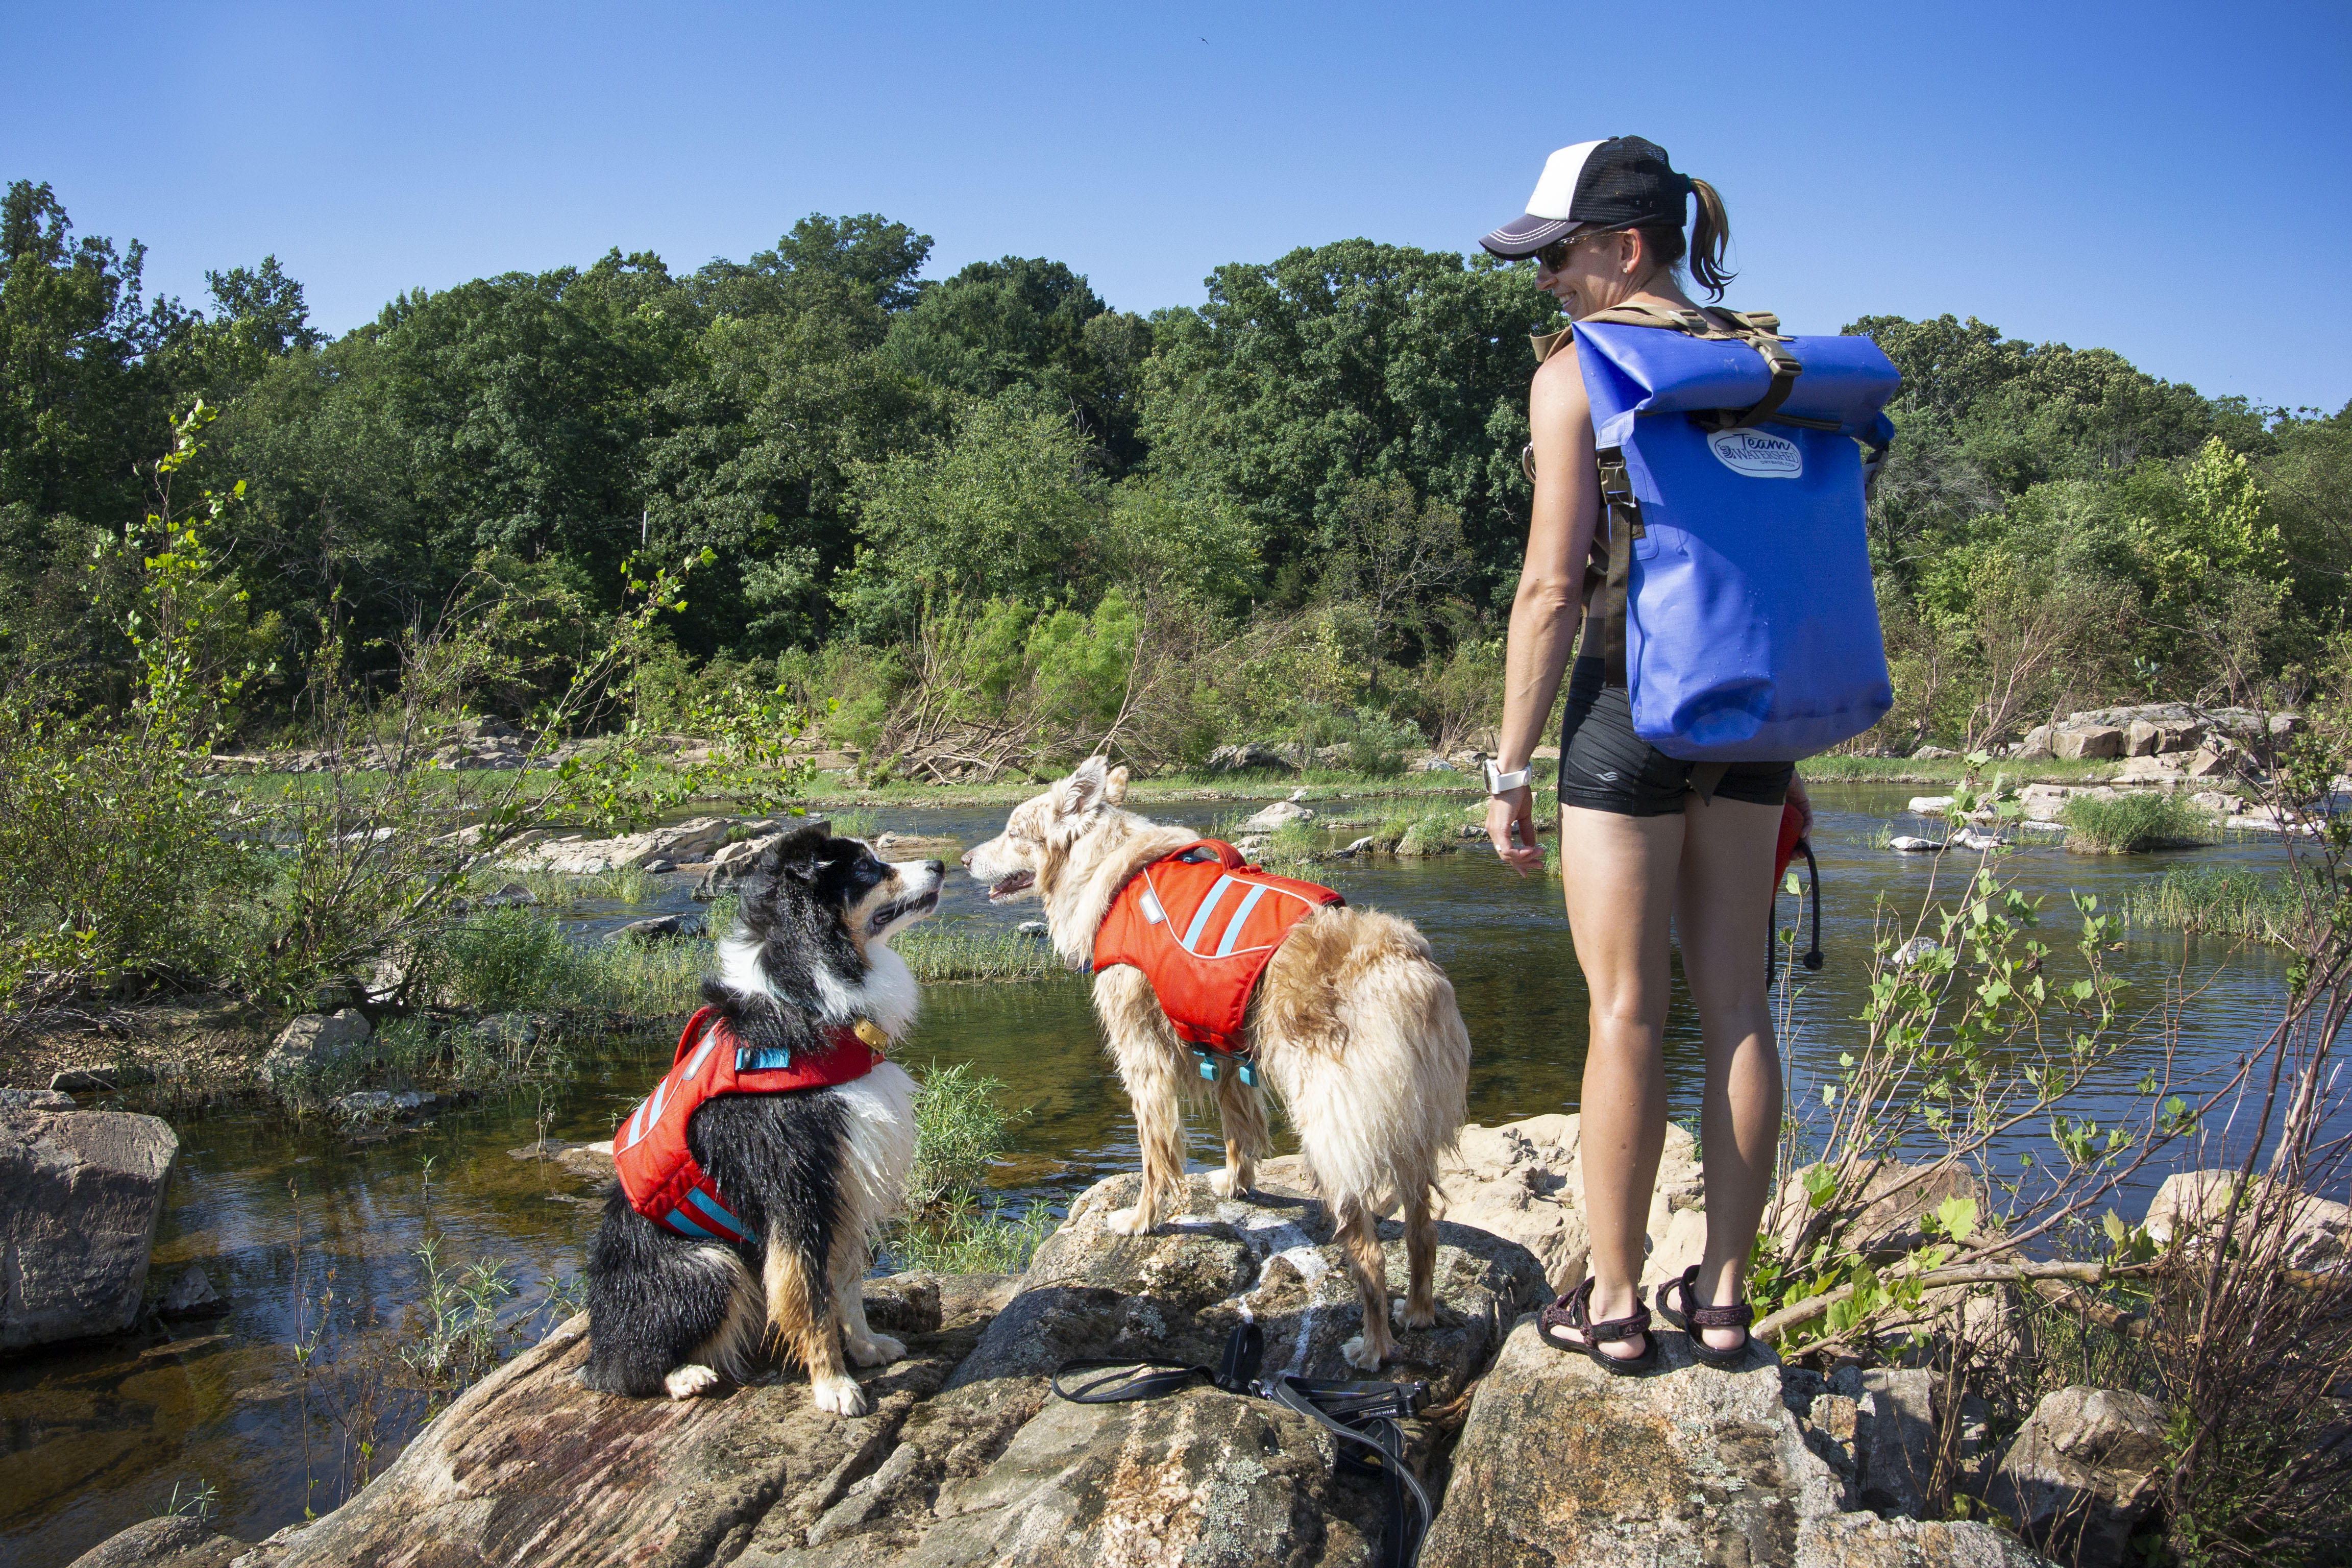 Women with a Watershed drybag backpack on and two dogs standing next to her by the river